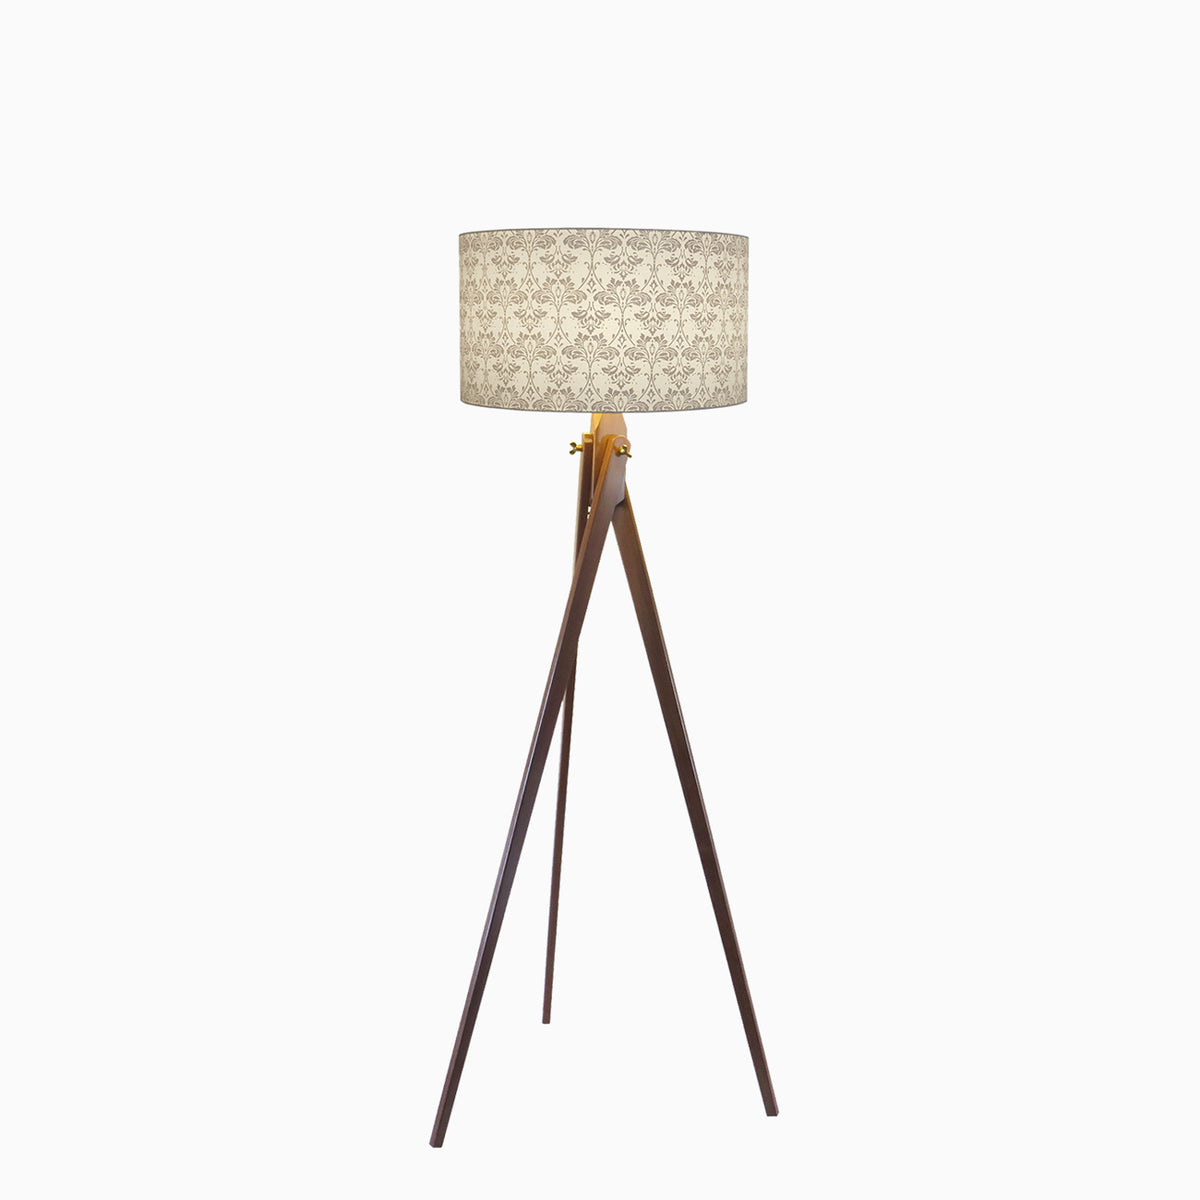 Acanthe Floor Lamp - objects of interest